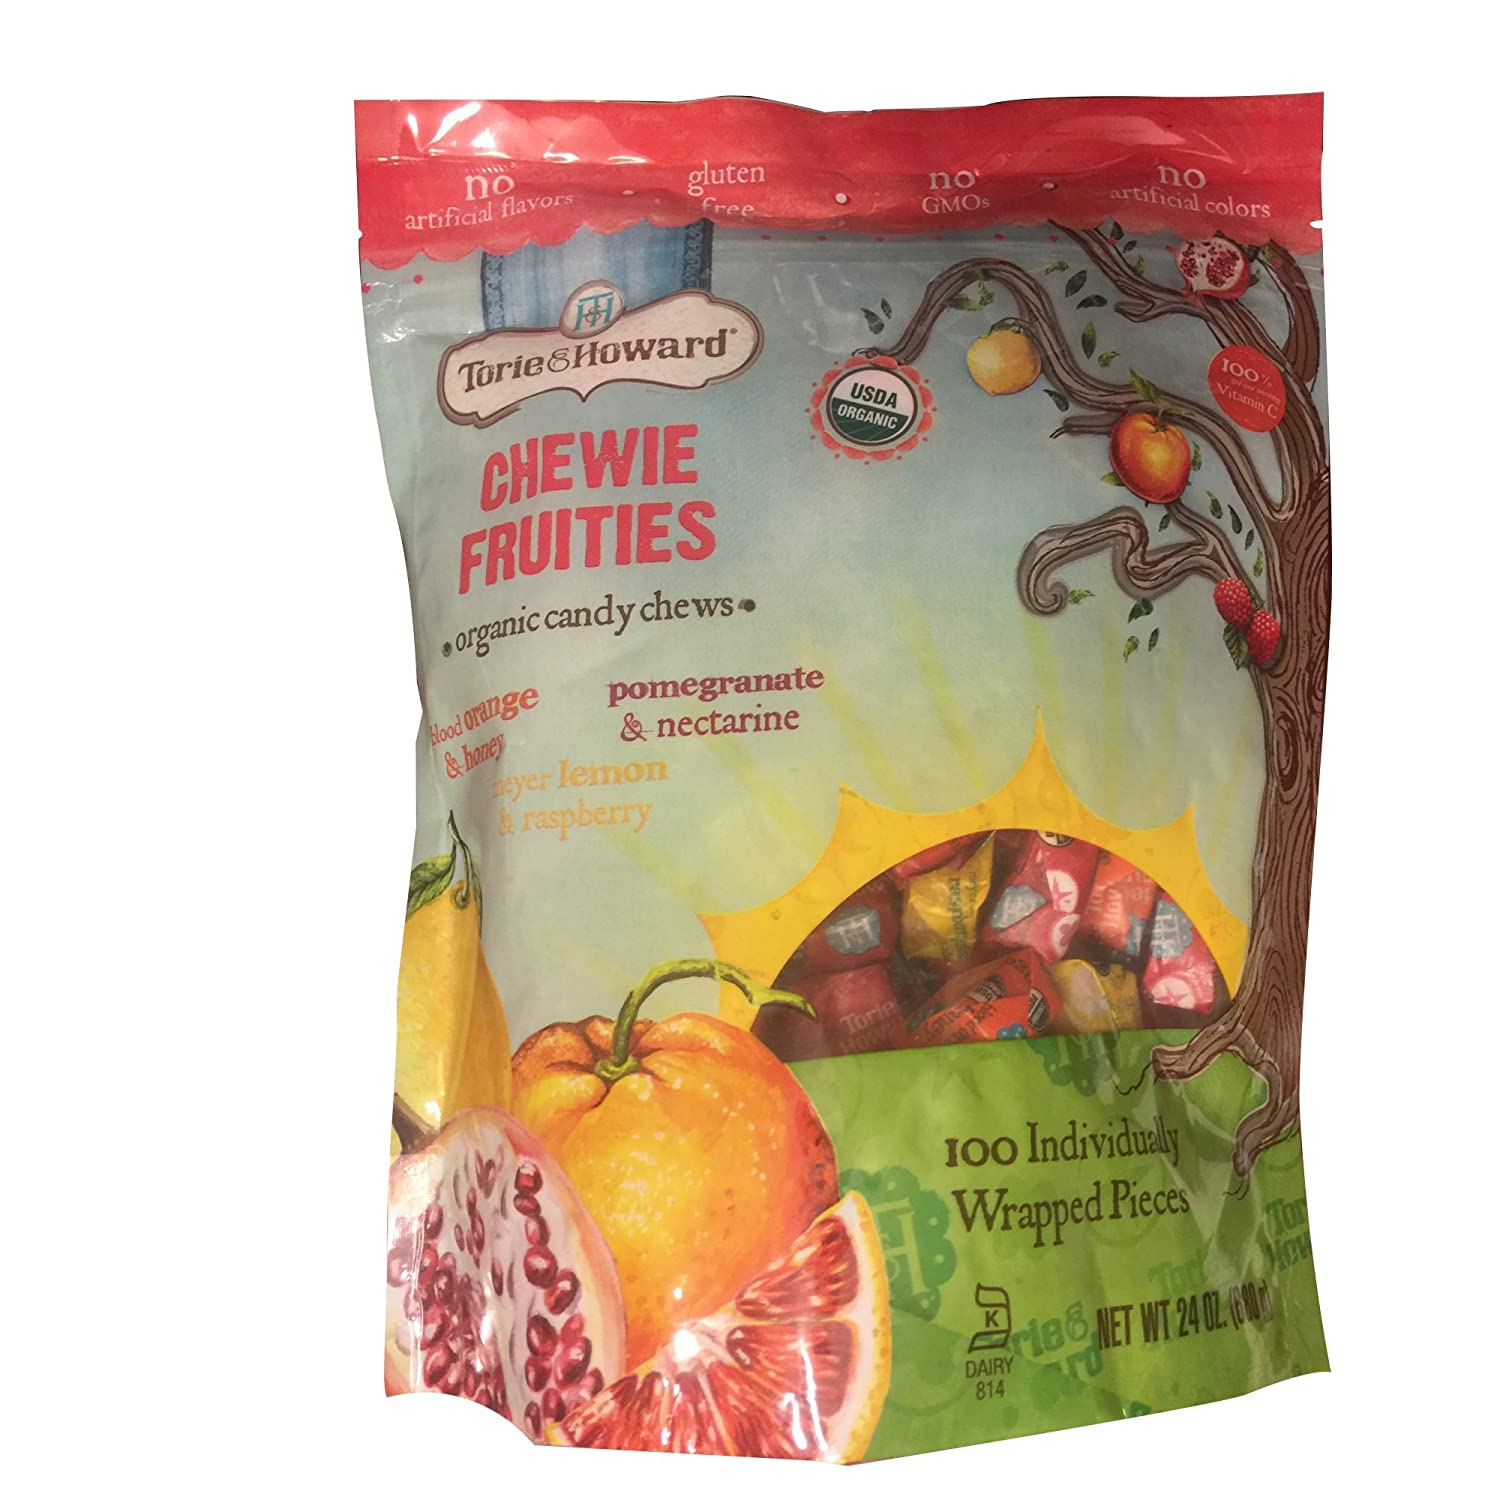 Torie And Howard Chewie Fruities | Organic Candy Chews | 100 Individially Wrapped Pieces | 24 Ounces by Torie & Howard